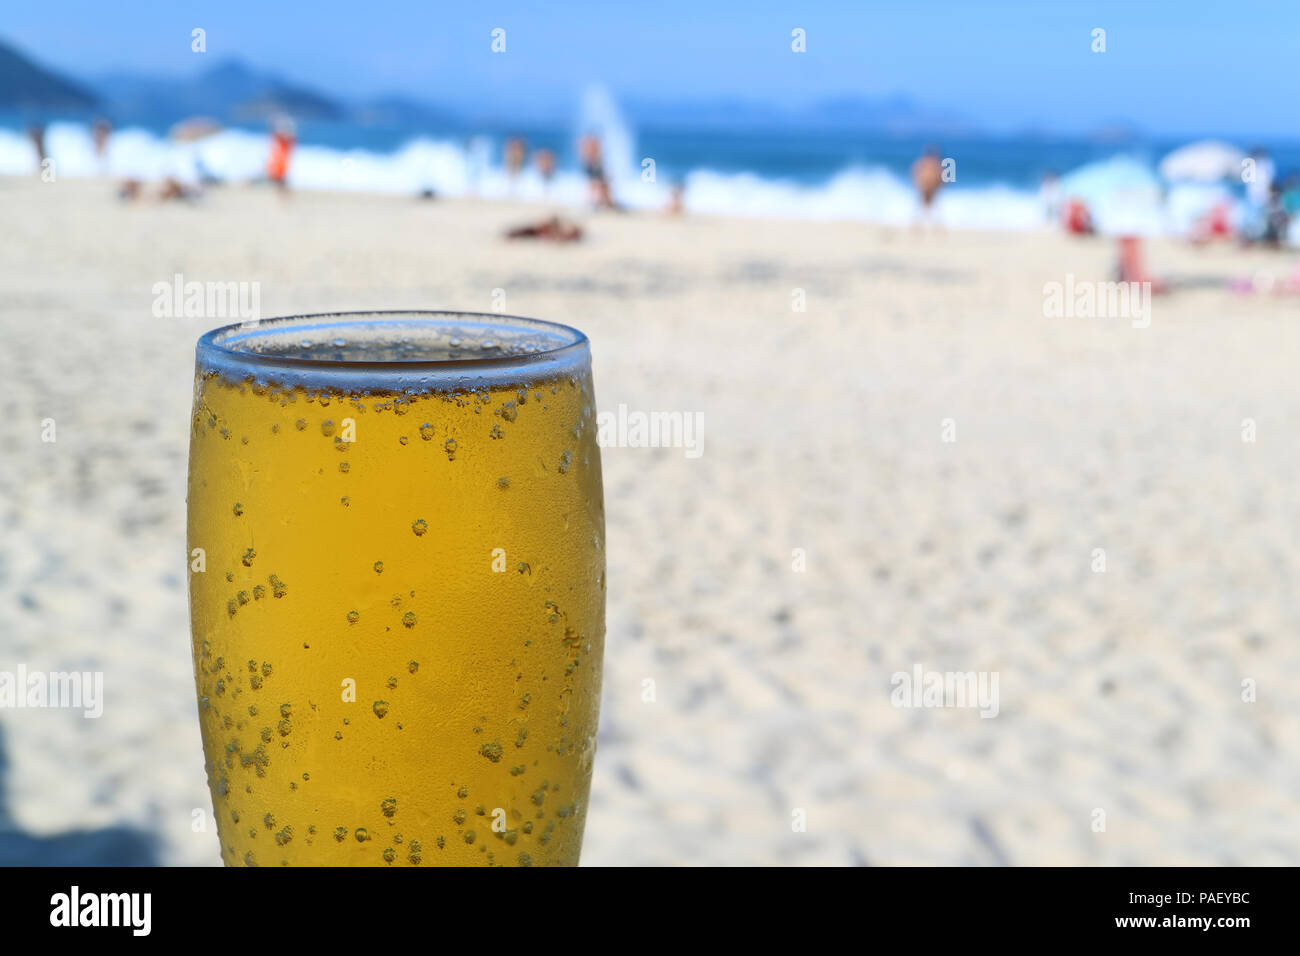 One big glass of cold draft beer with Blurred Copacabana beach full of people in background, Rio de Janeiro, Brazil - Stock Image